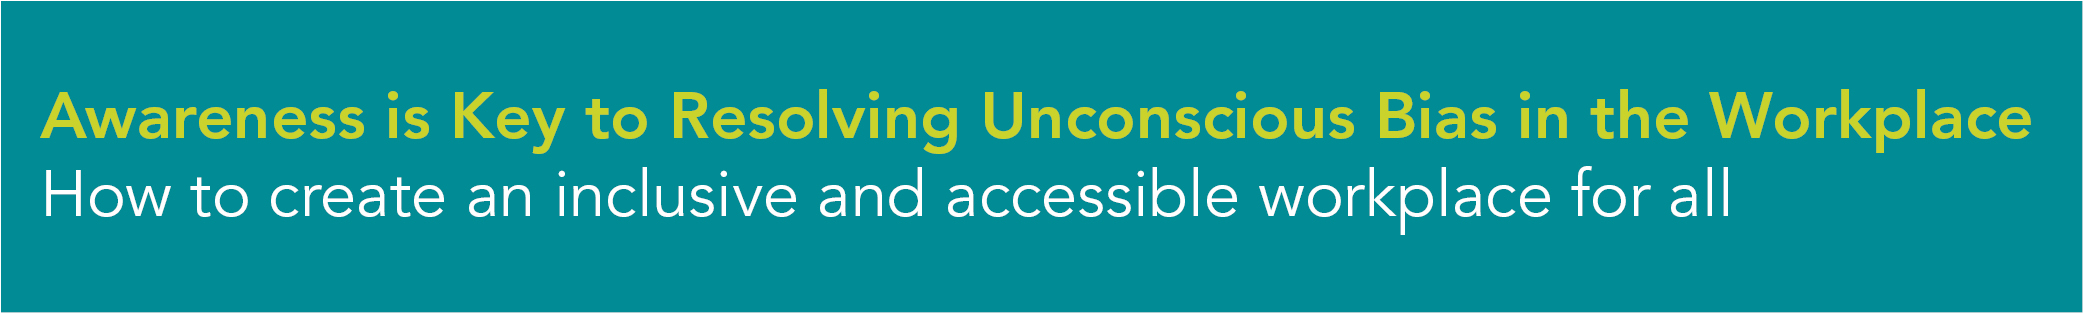 Awareness is Key to Resolving Unconscious Bias in the Workplace How to create an inclusive and accessible workplace for all